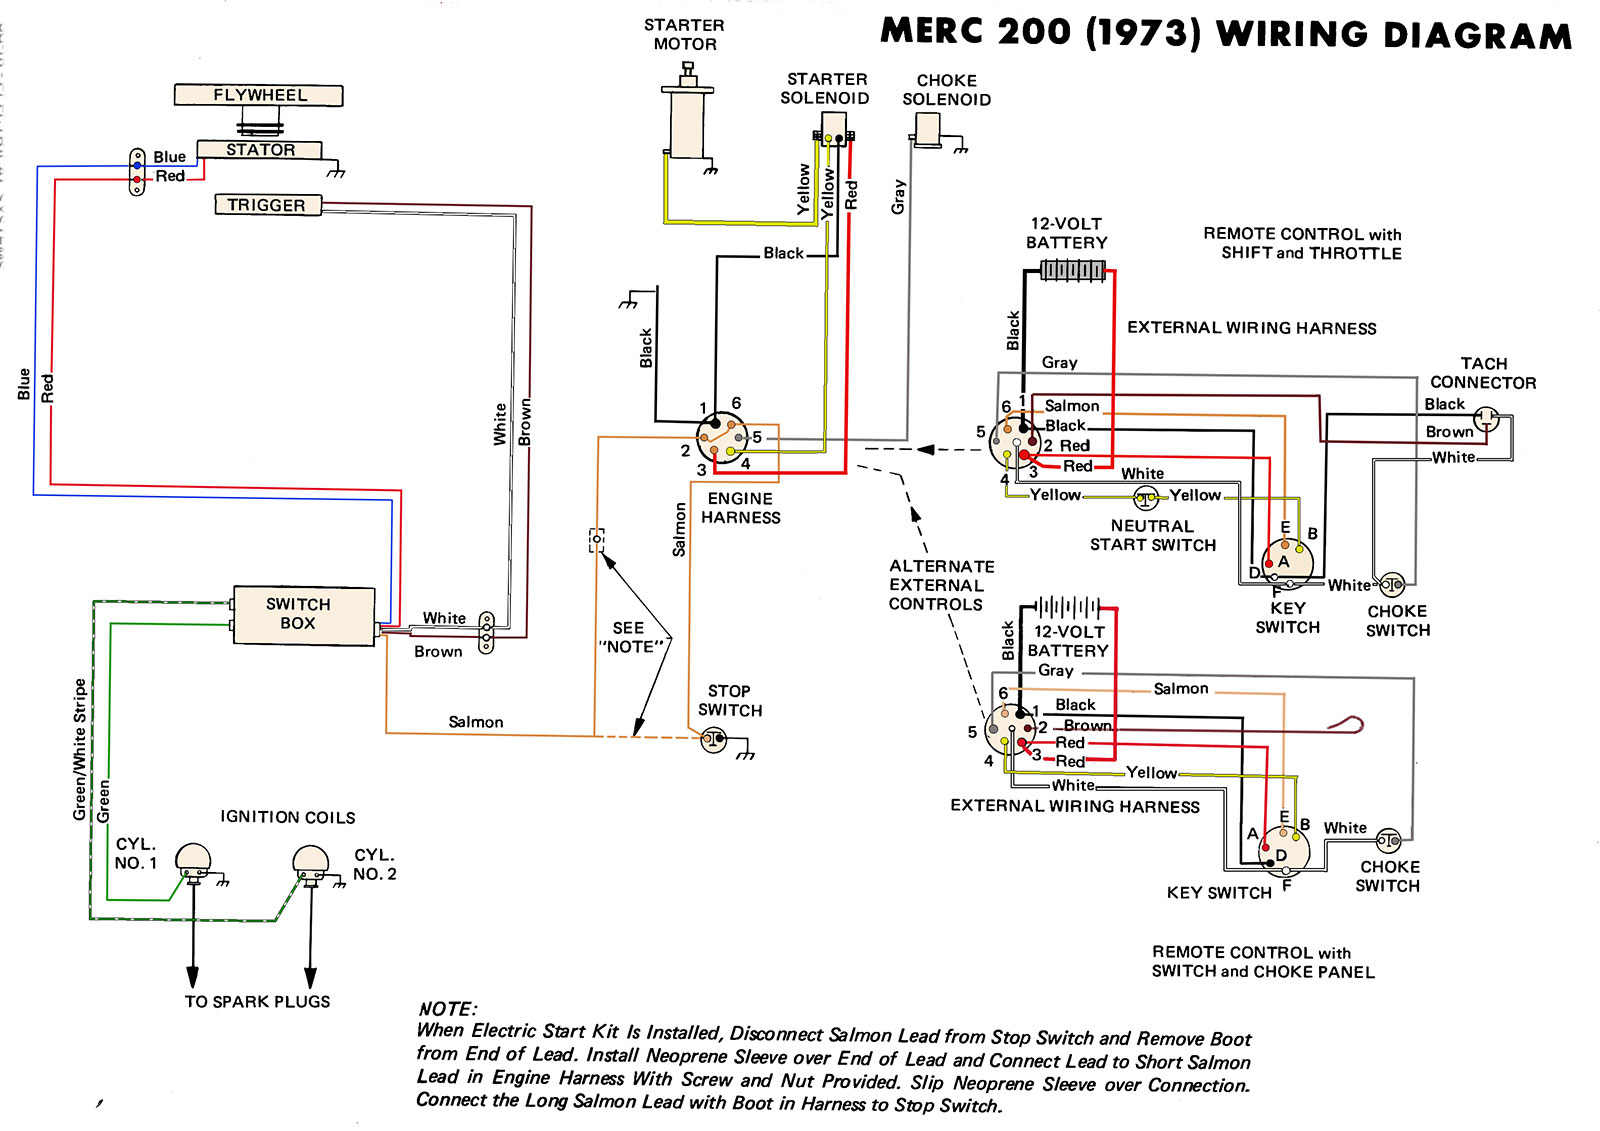 Mercury Outboard Wiring diagrams -- Mastertech Marin on starcraft chassis, mercruiser tach wire diagram, pop up camper cable diagram, mercruiser alpha one diagram, mercruiser ignition diagram, starcraft steering,